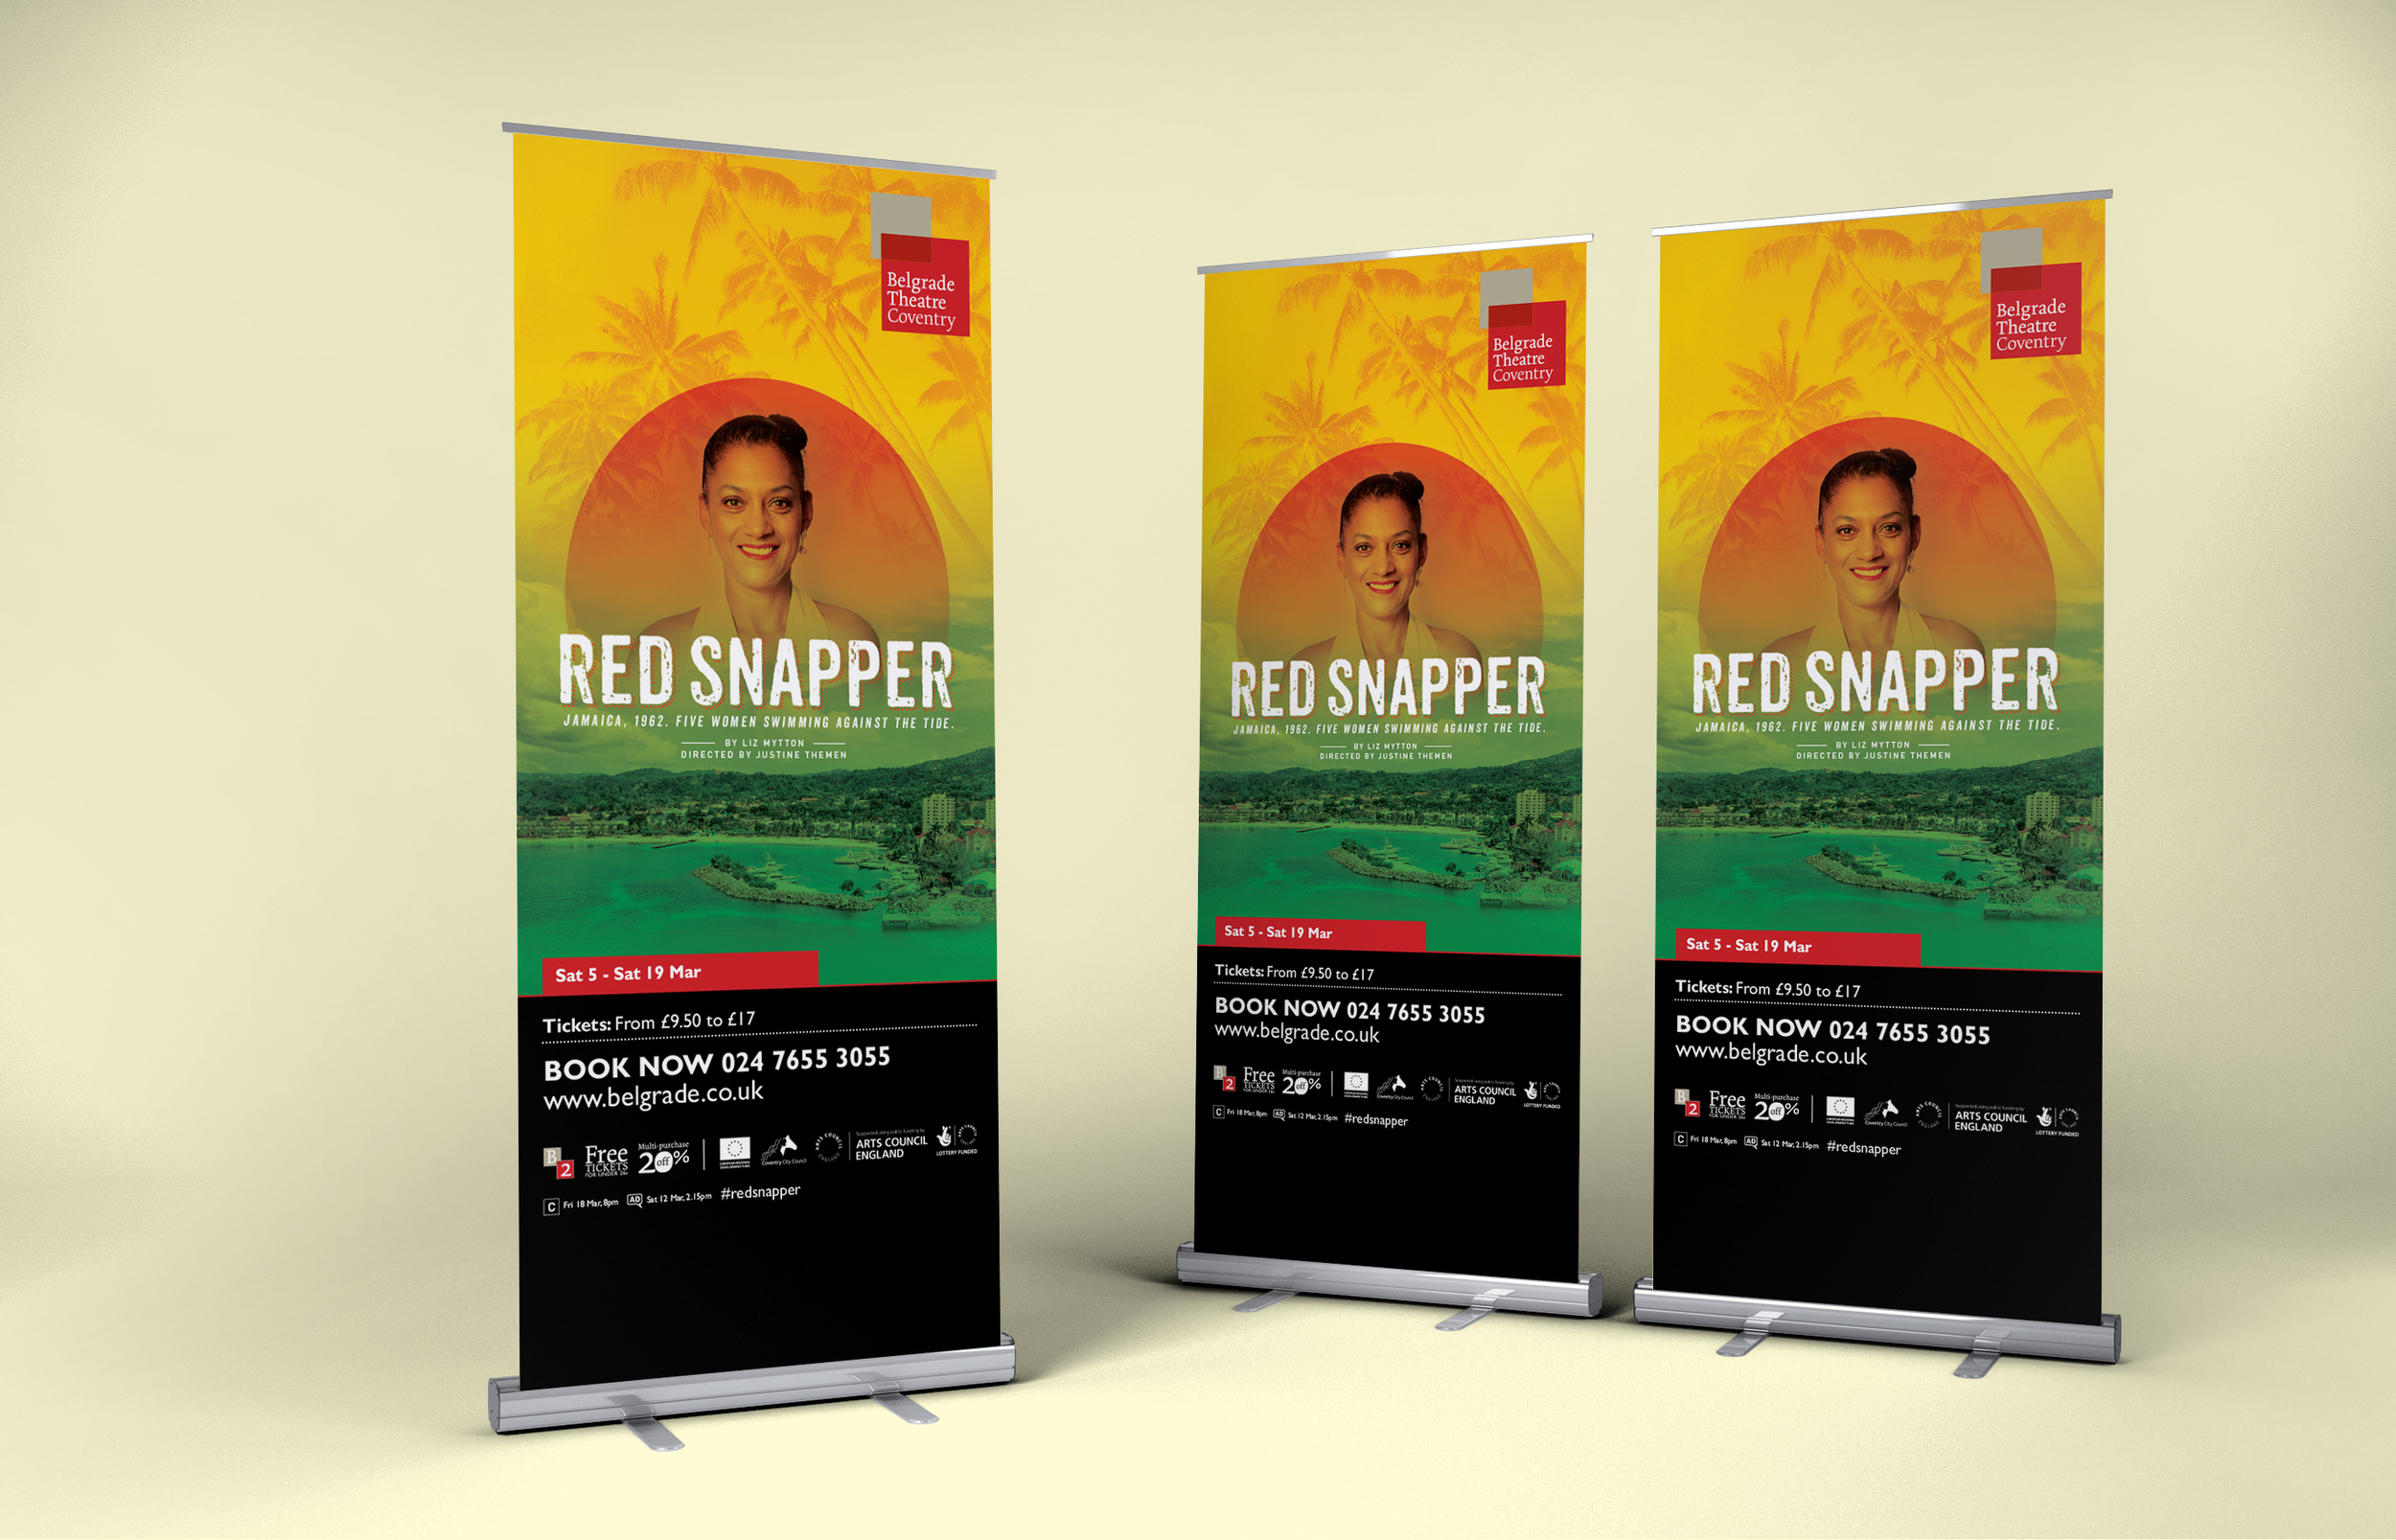 Red Snapper banner stand design for Belgrade Theatre, coventry by Create Onsight